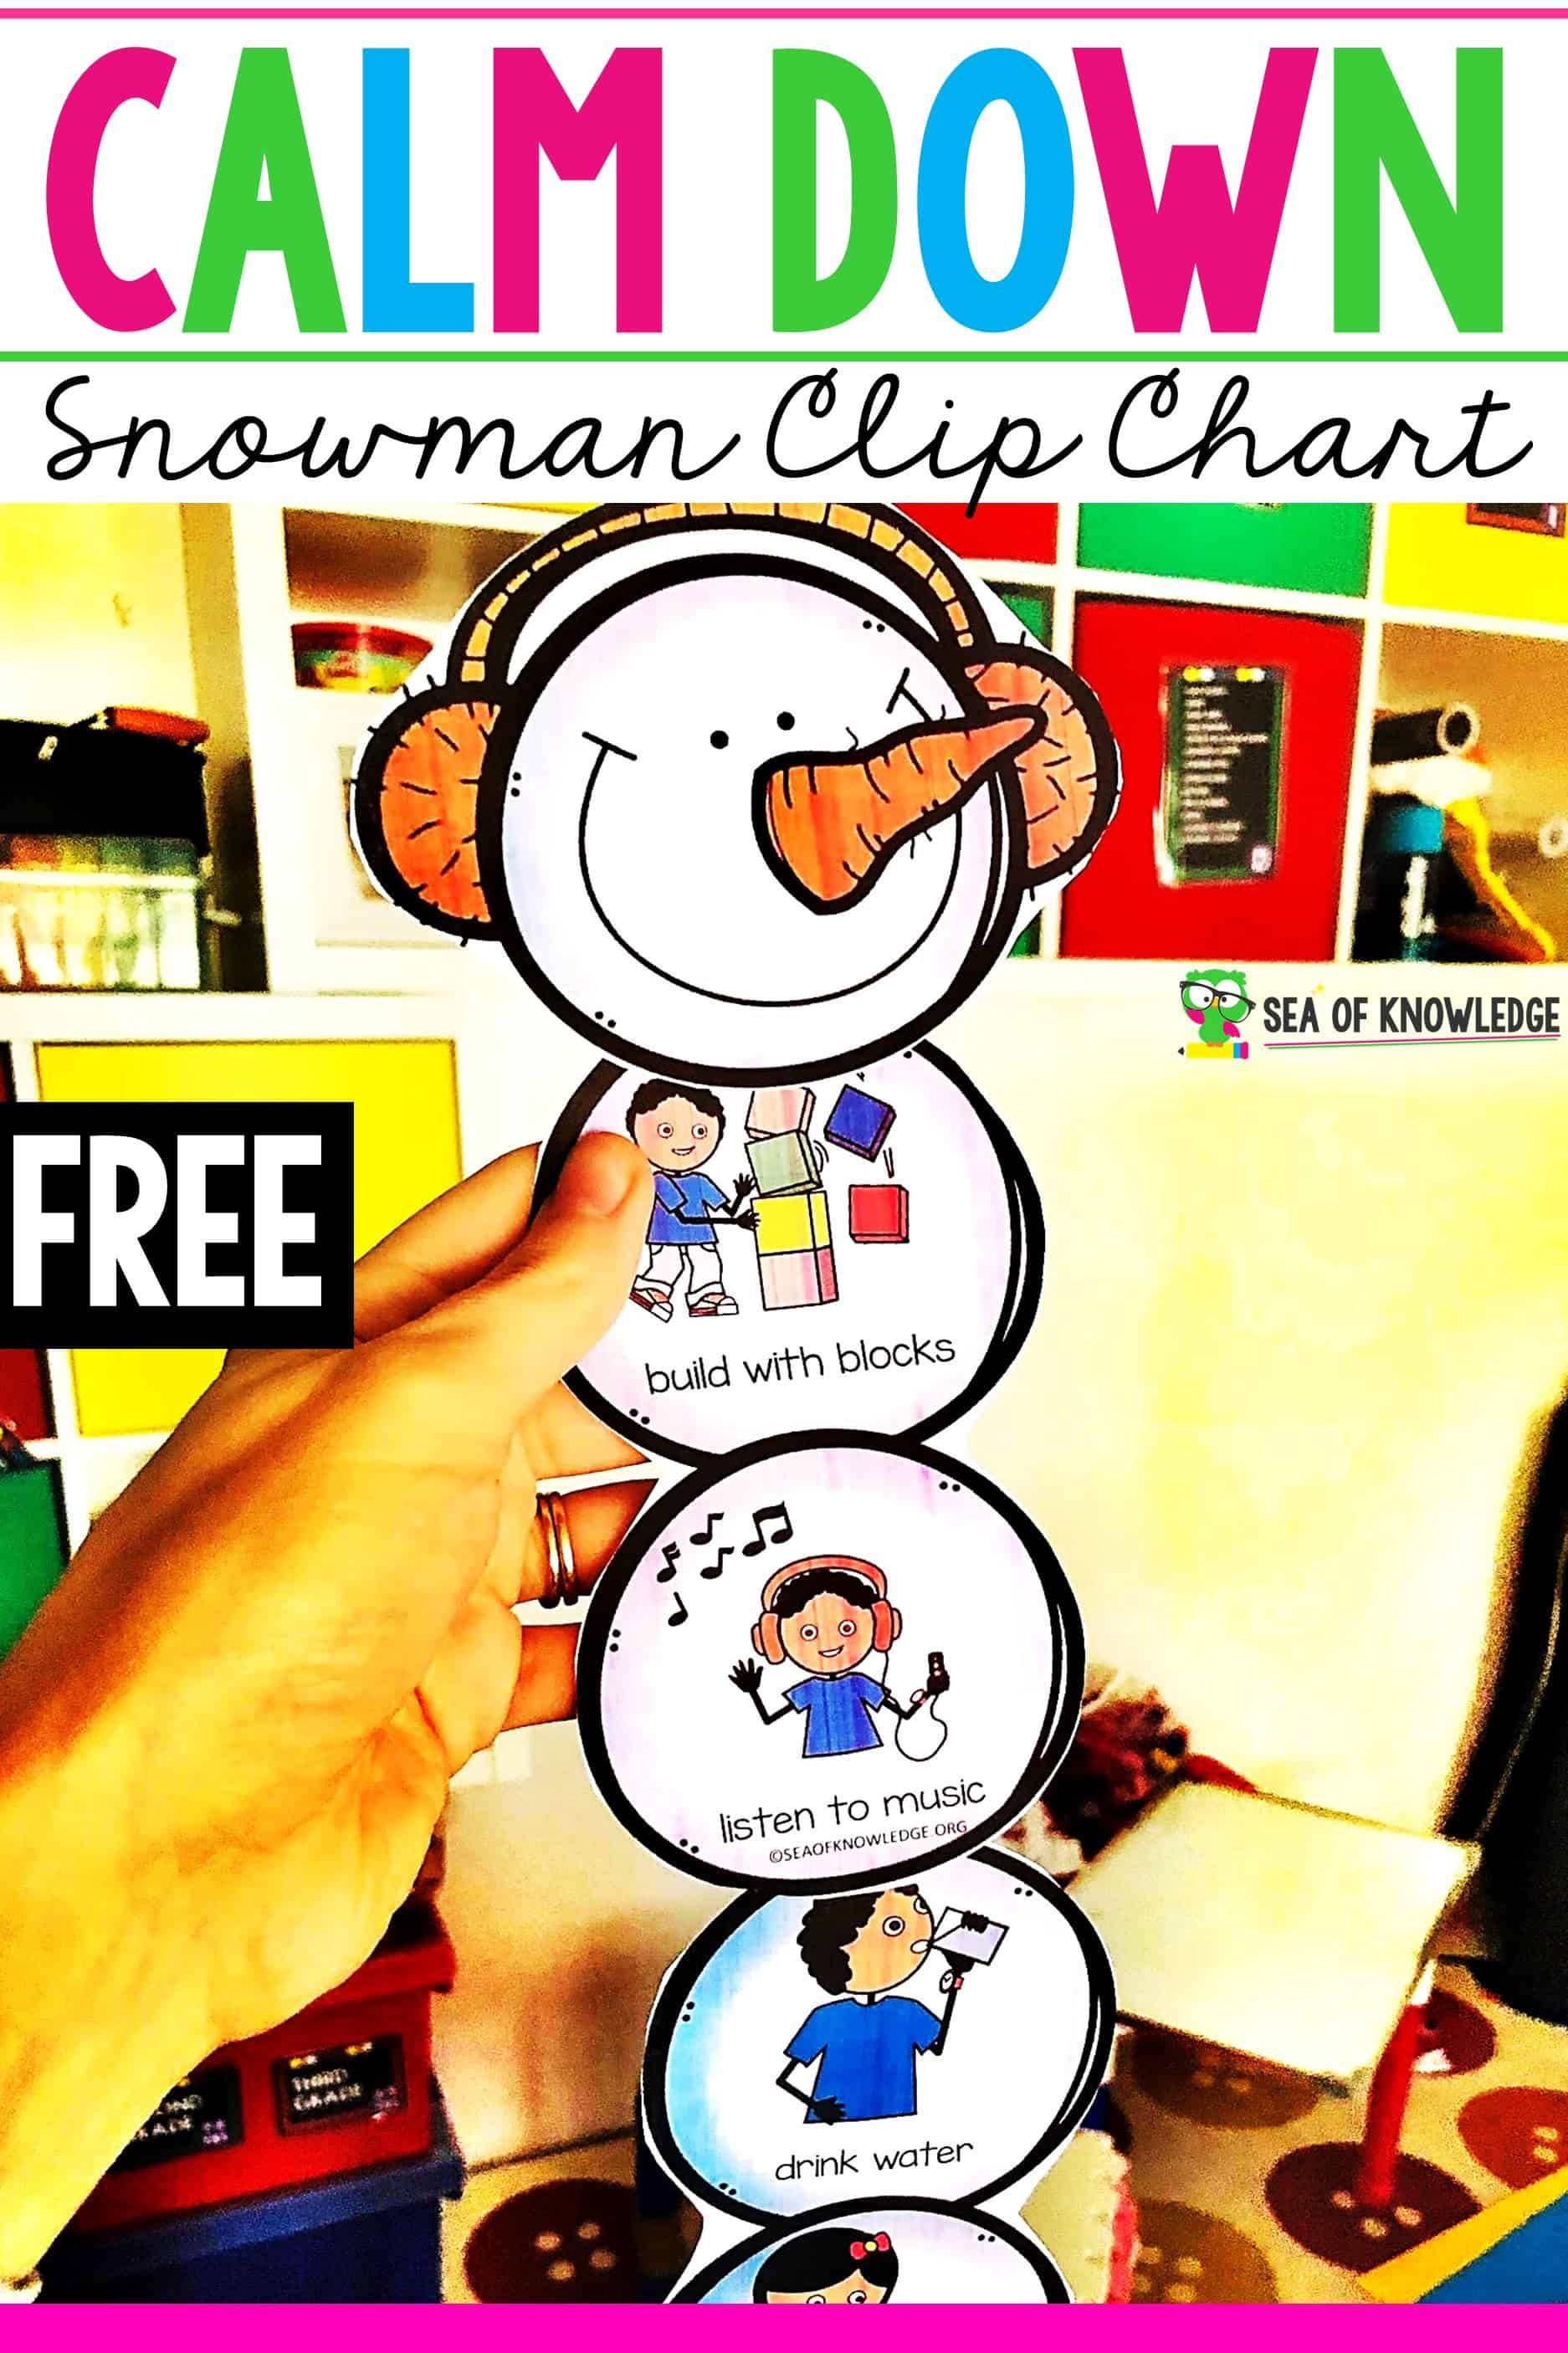 Calm Down Snowman Kit Promote A Way To Help Kids Deal With